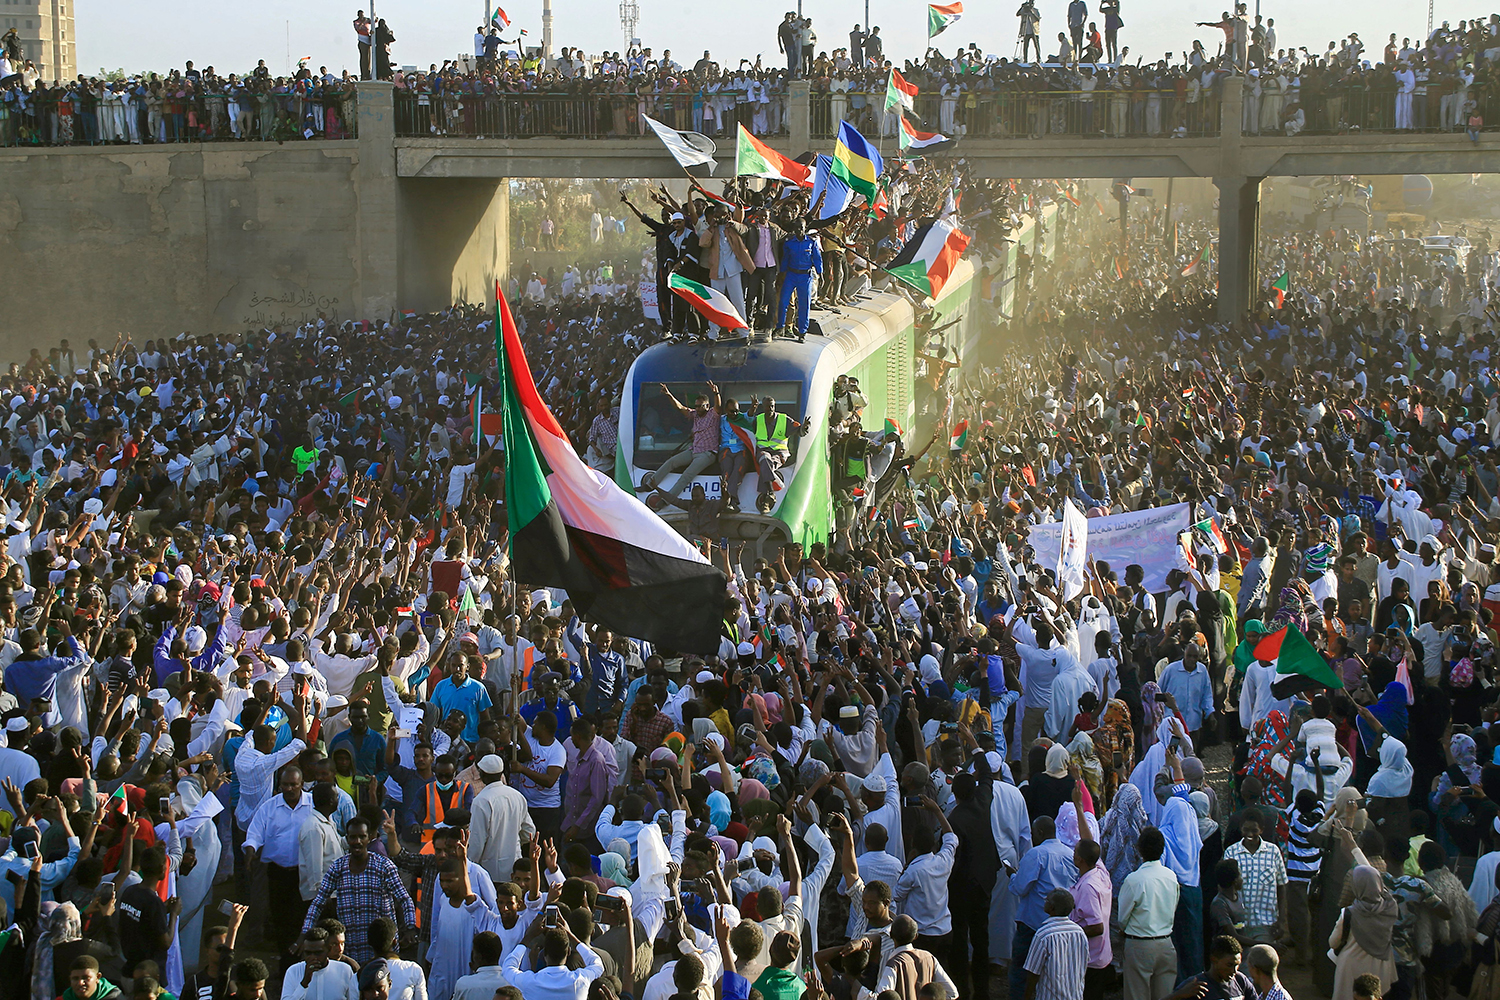 Sudan Is Remaking Its Relationship With the Rest of the World